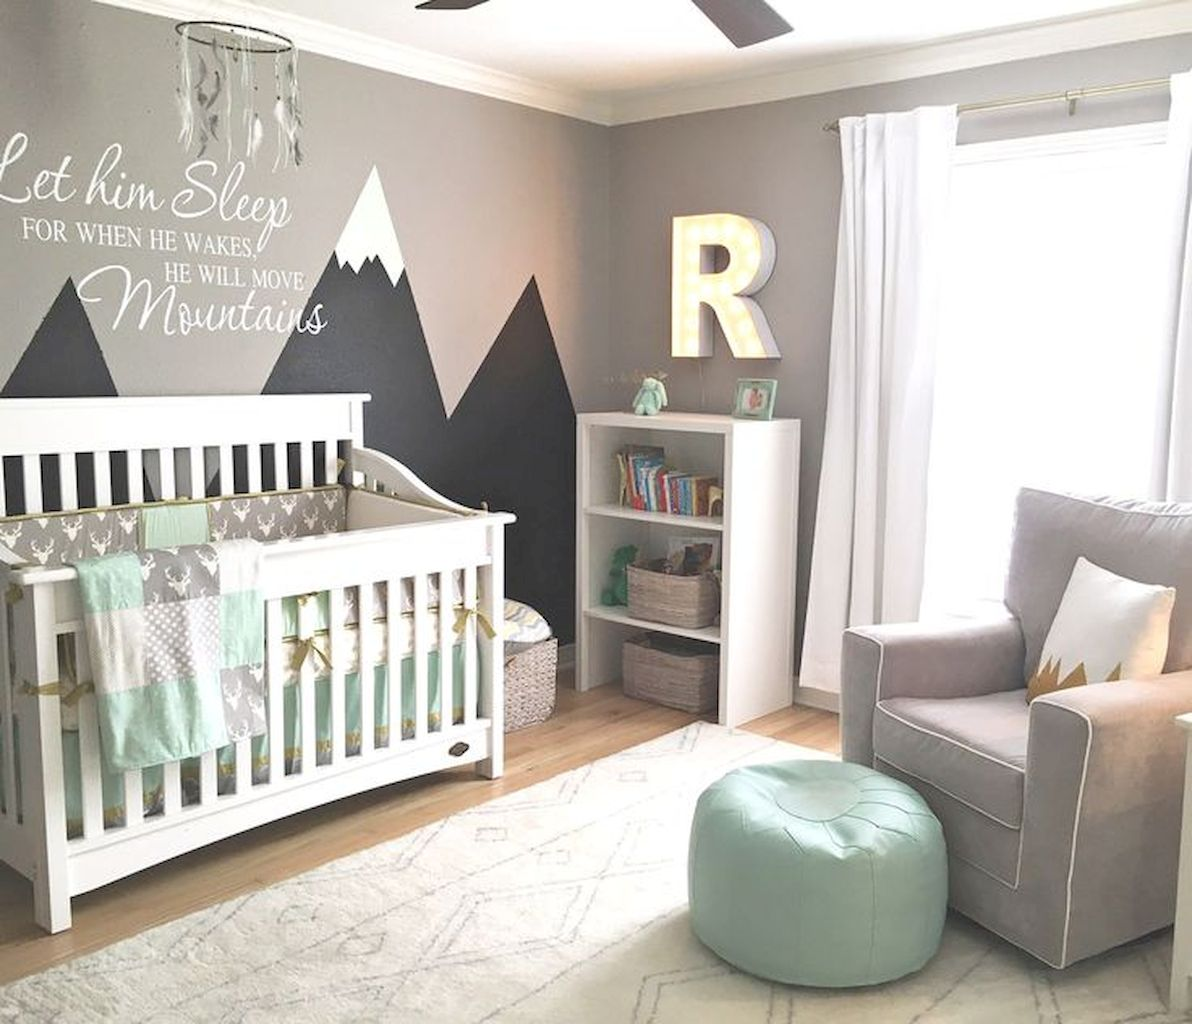 https://elonahome.com/wp-content/uploads/2018/09/Modern-Baby-Nursery-Rooms-Ideas-with-Simple-and-Colorful-Concepts-with-Pattern-and-Unique-Baby-Crib-Design-Part-49.jpg